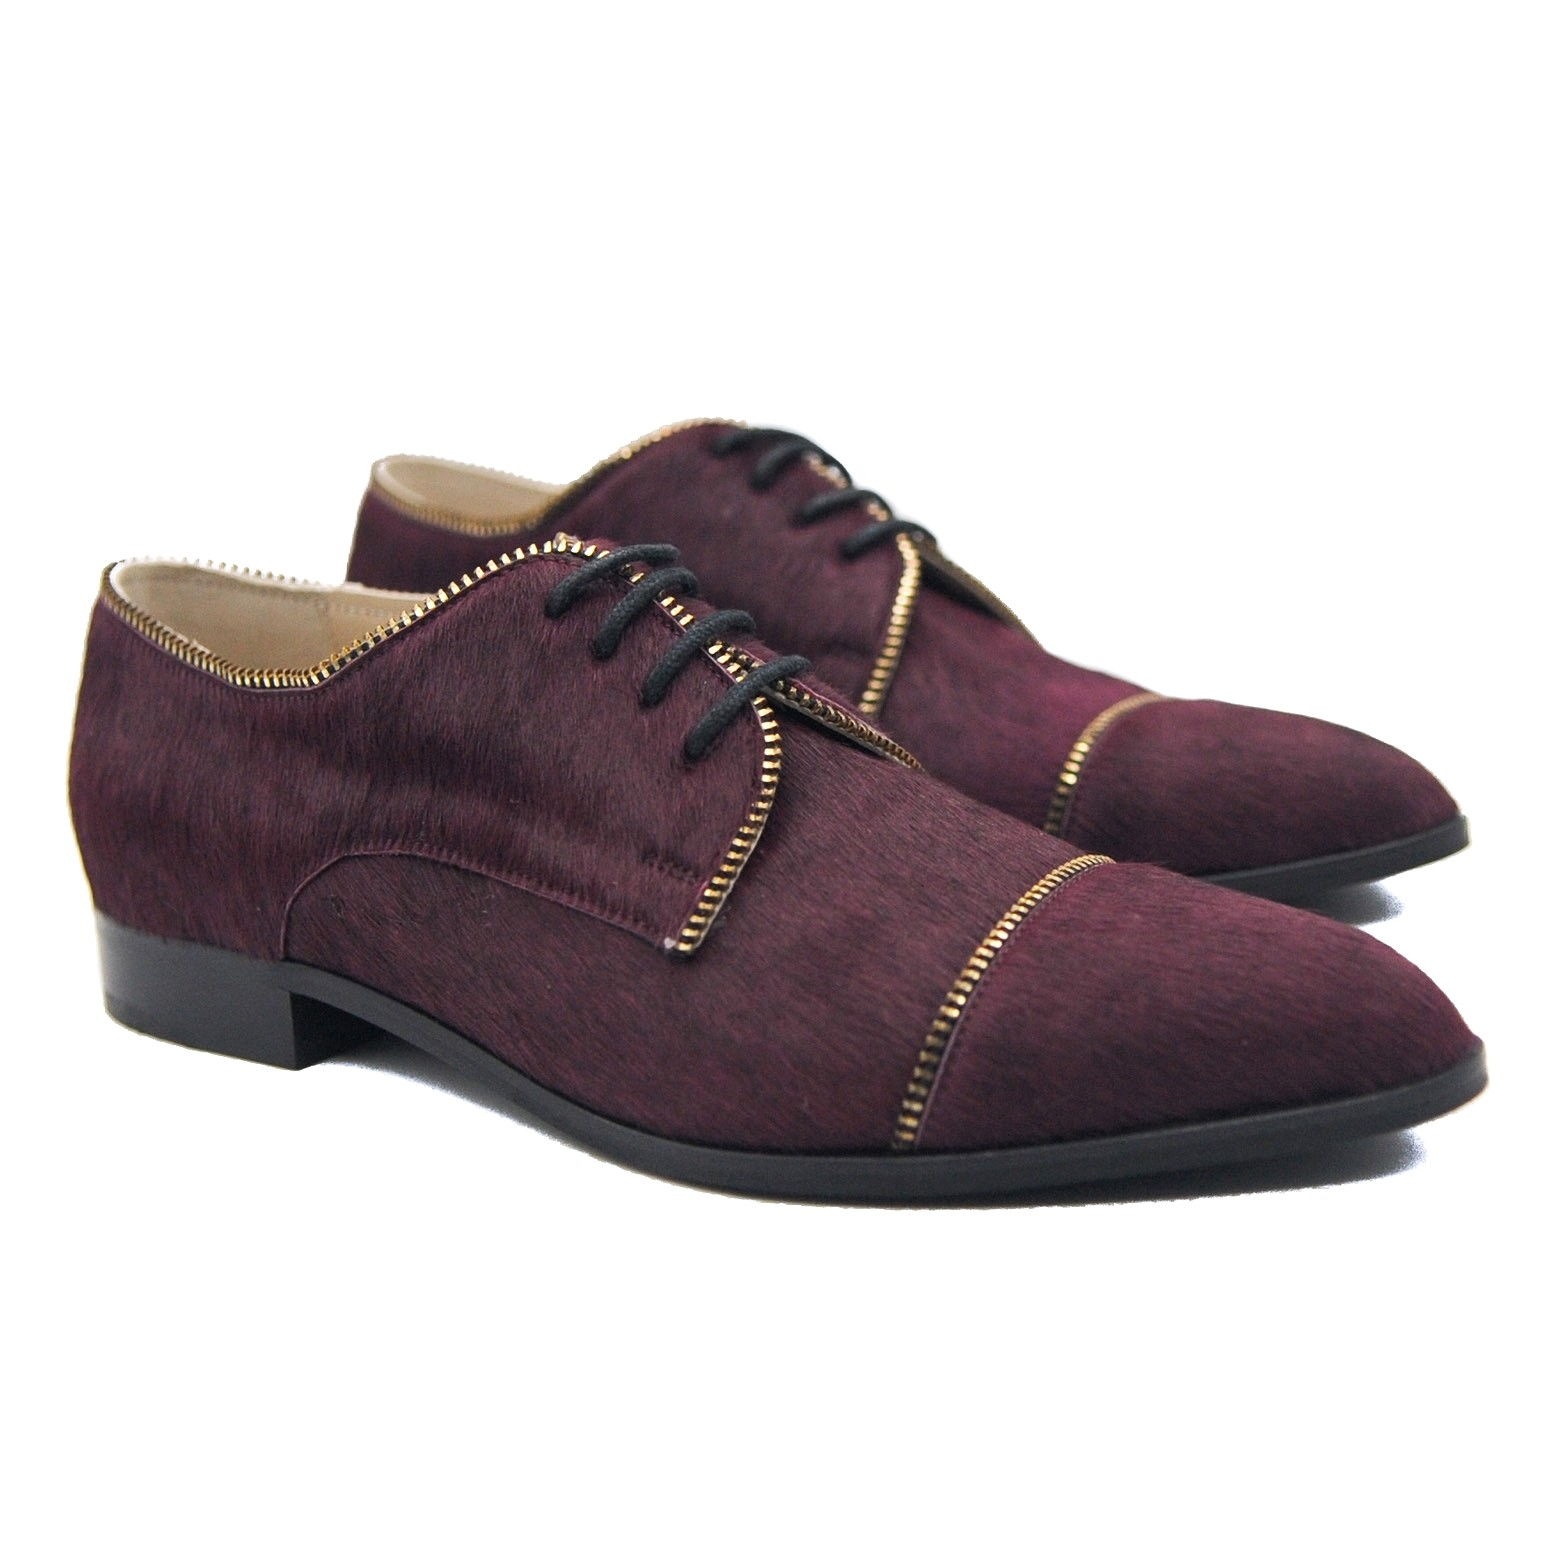 Goody2Shoes Ladies Pony Hair Mahogany Lace Up Brogues with Decorative Zips